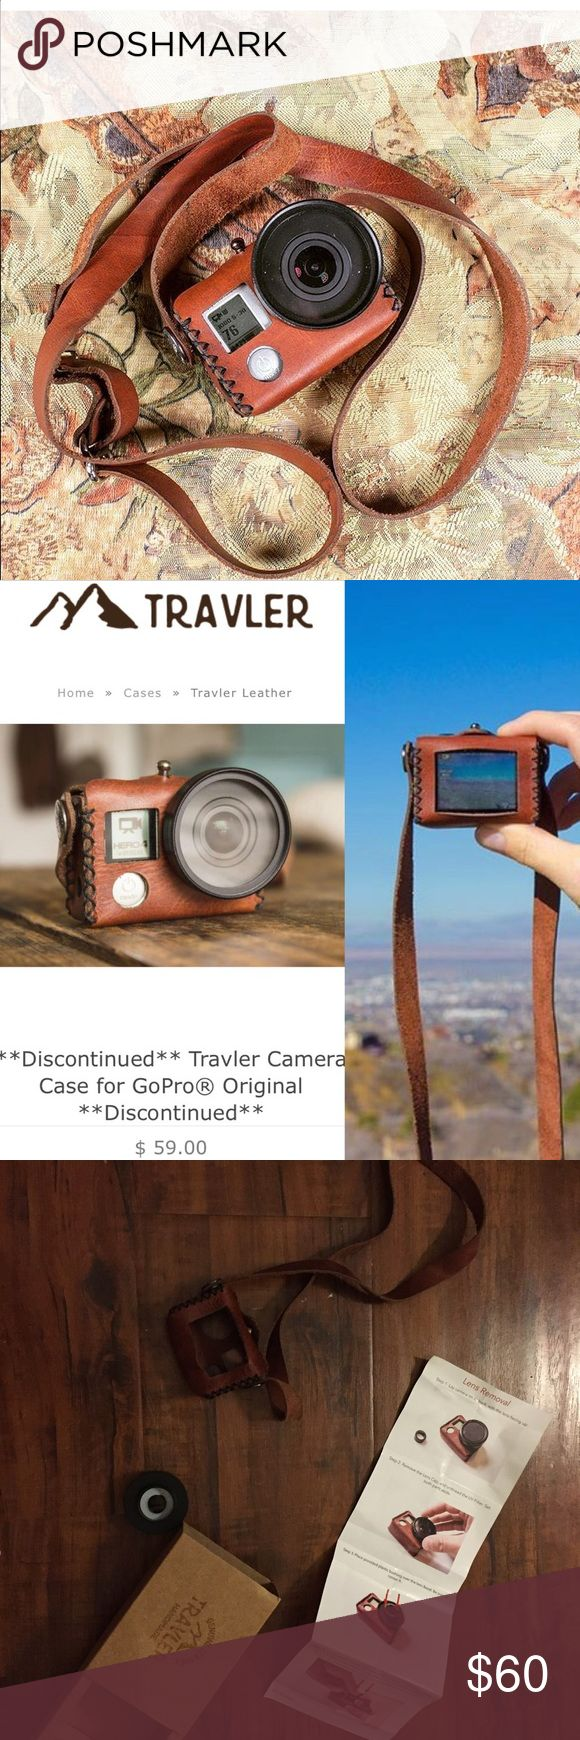 Travel Leather GoPro Hero 4 leather case The original Travel Leather GoPro case (discontinued now) the orange brown leather color. In original box! A vintage-inspired hand stitched leather case designed to carry your GoPro® -premium top grain leather. Fits Hero 4 silver. 40.5mm Lens Filter Adapter included. I used it once but sold my GoPro so no use for it now! (GOPRO NOT INCLUDED ) travel leather Accessories